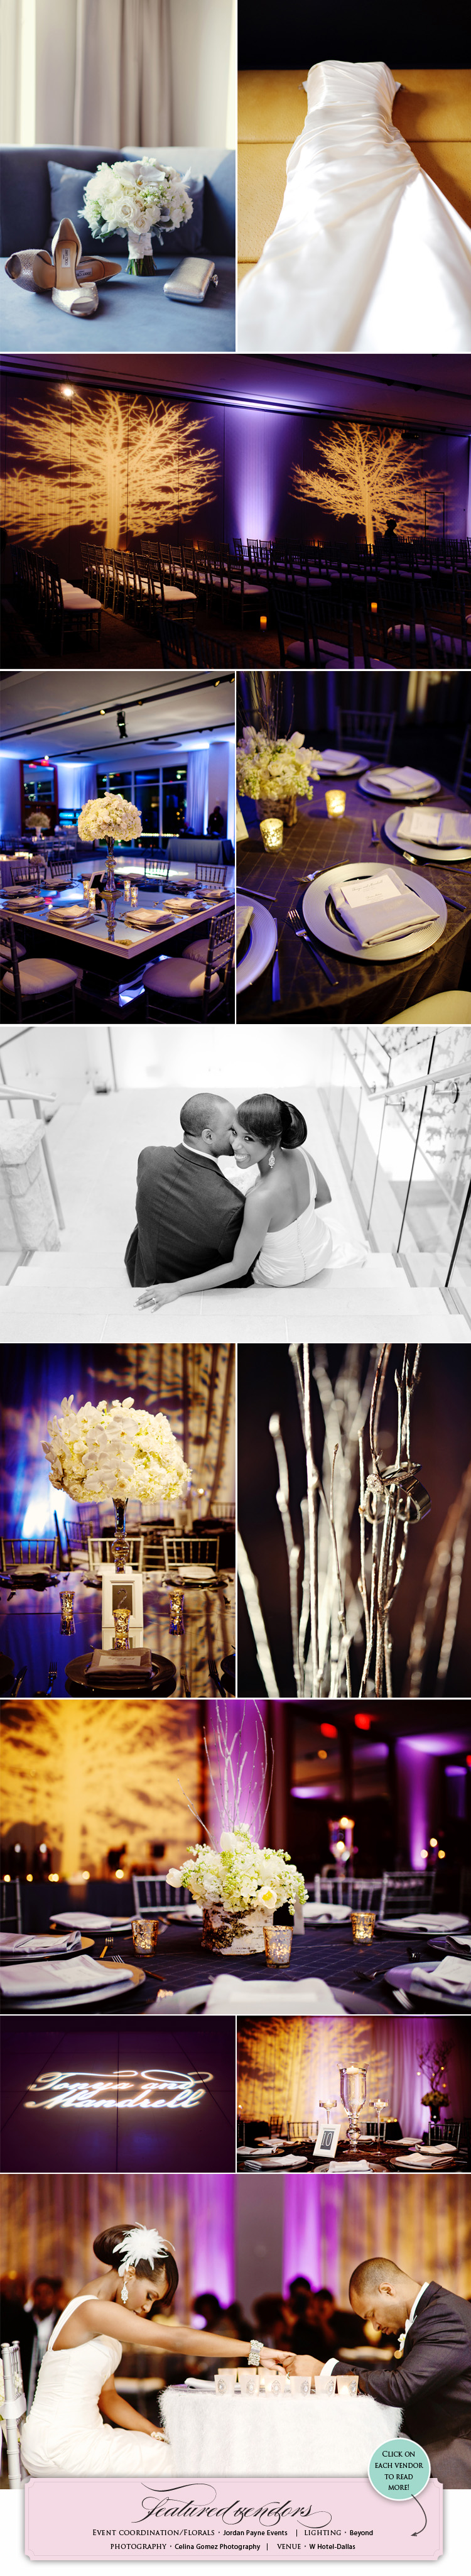 Dallas wedding photographer Celina Gomez Photography